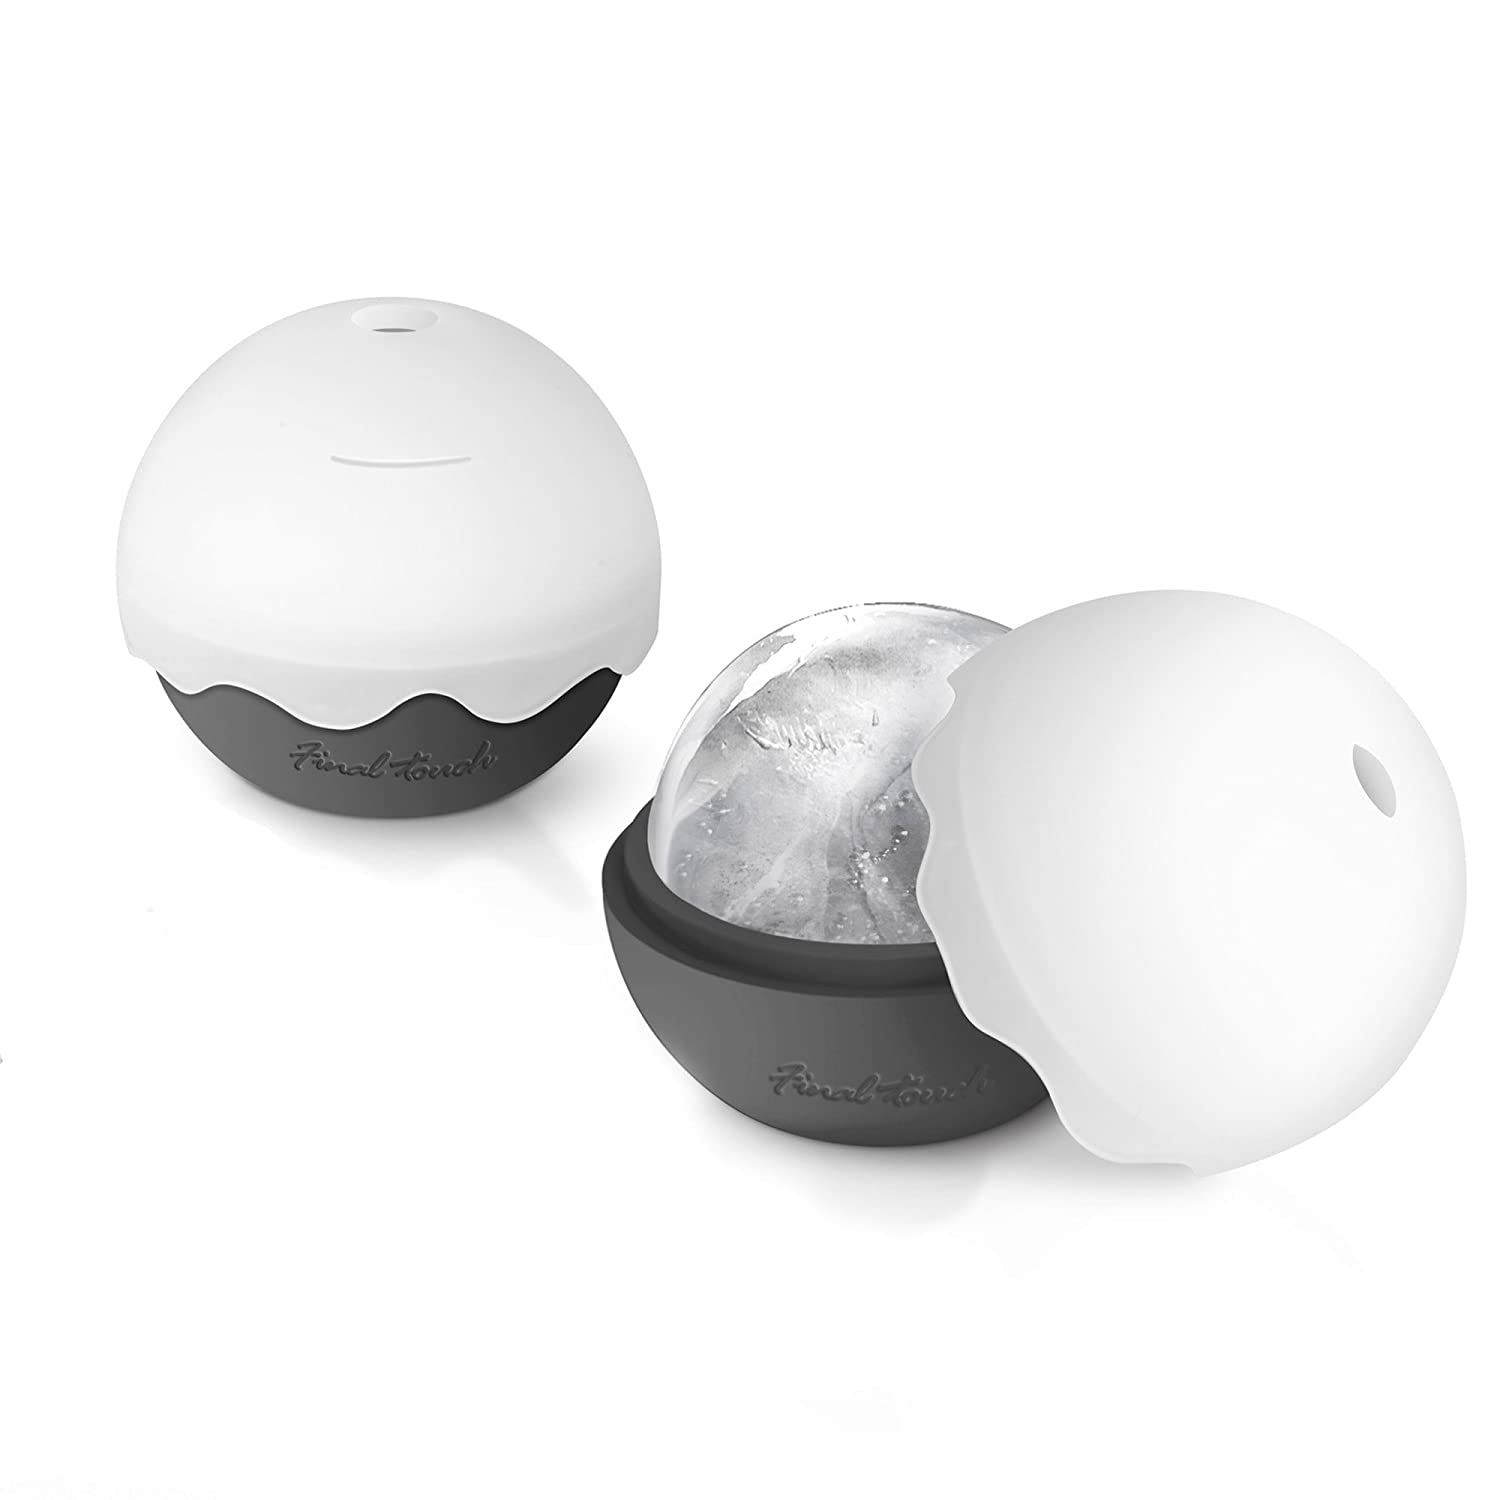 Ice Ball Moulds - Pack of 2 | Silicone Ice Ball Mould, Ice Sphere ...